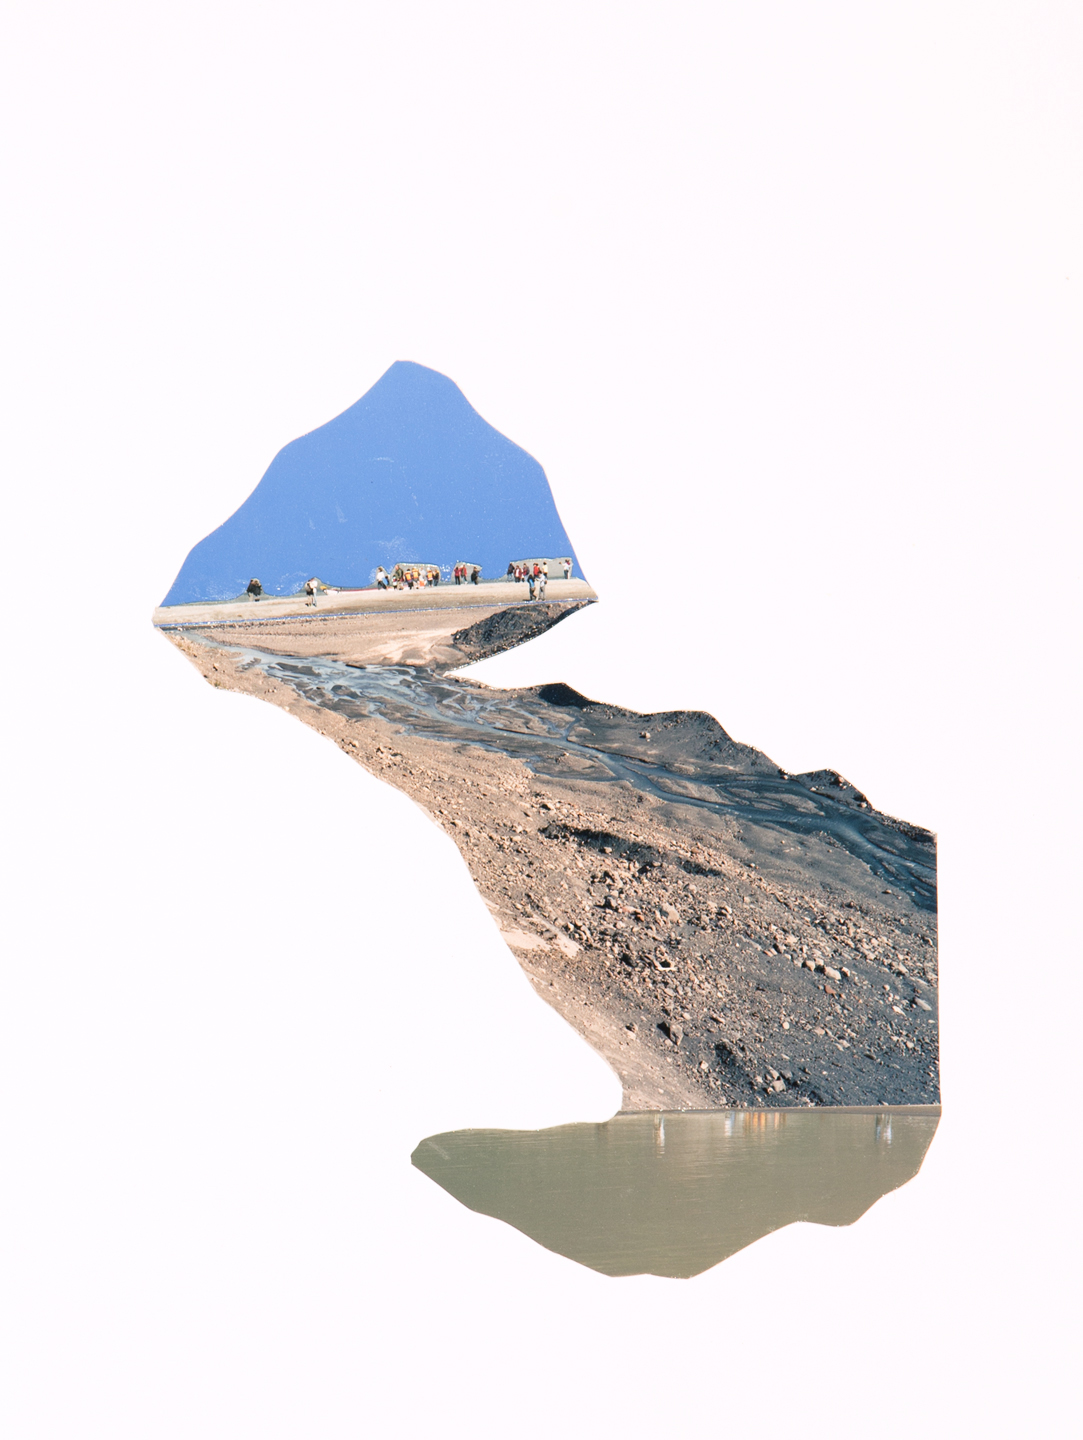 Landslide, 2017  12 x 9 inches  C-print on paper